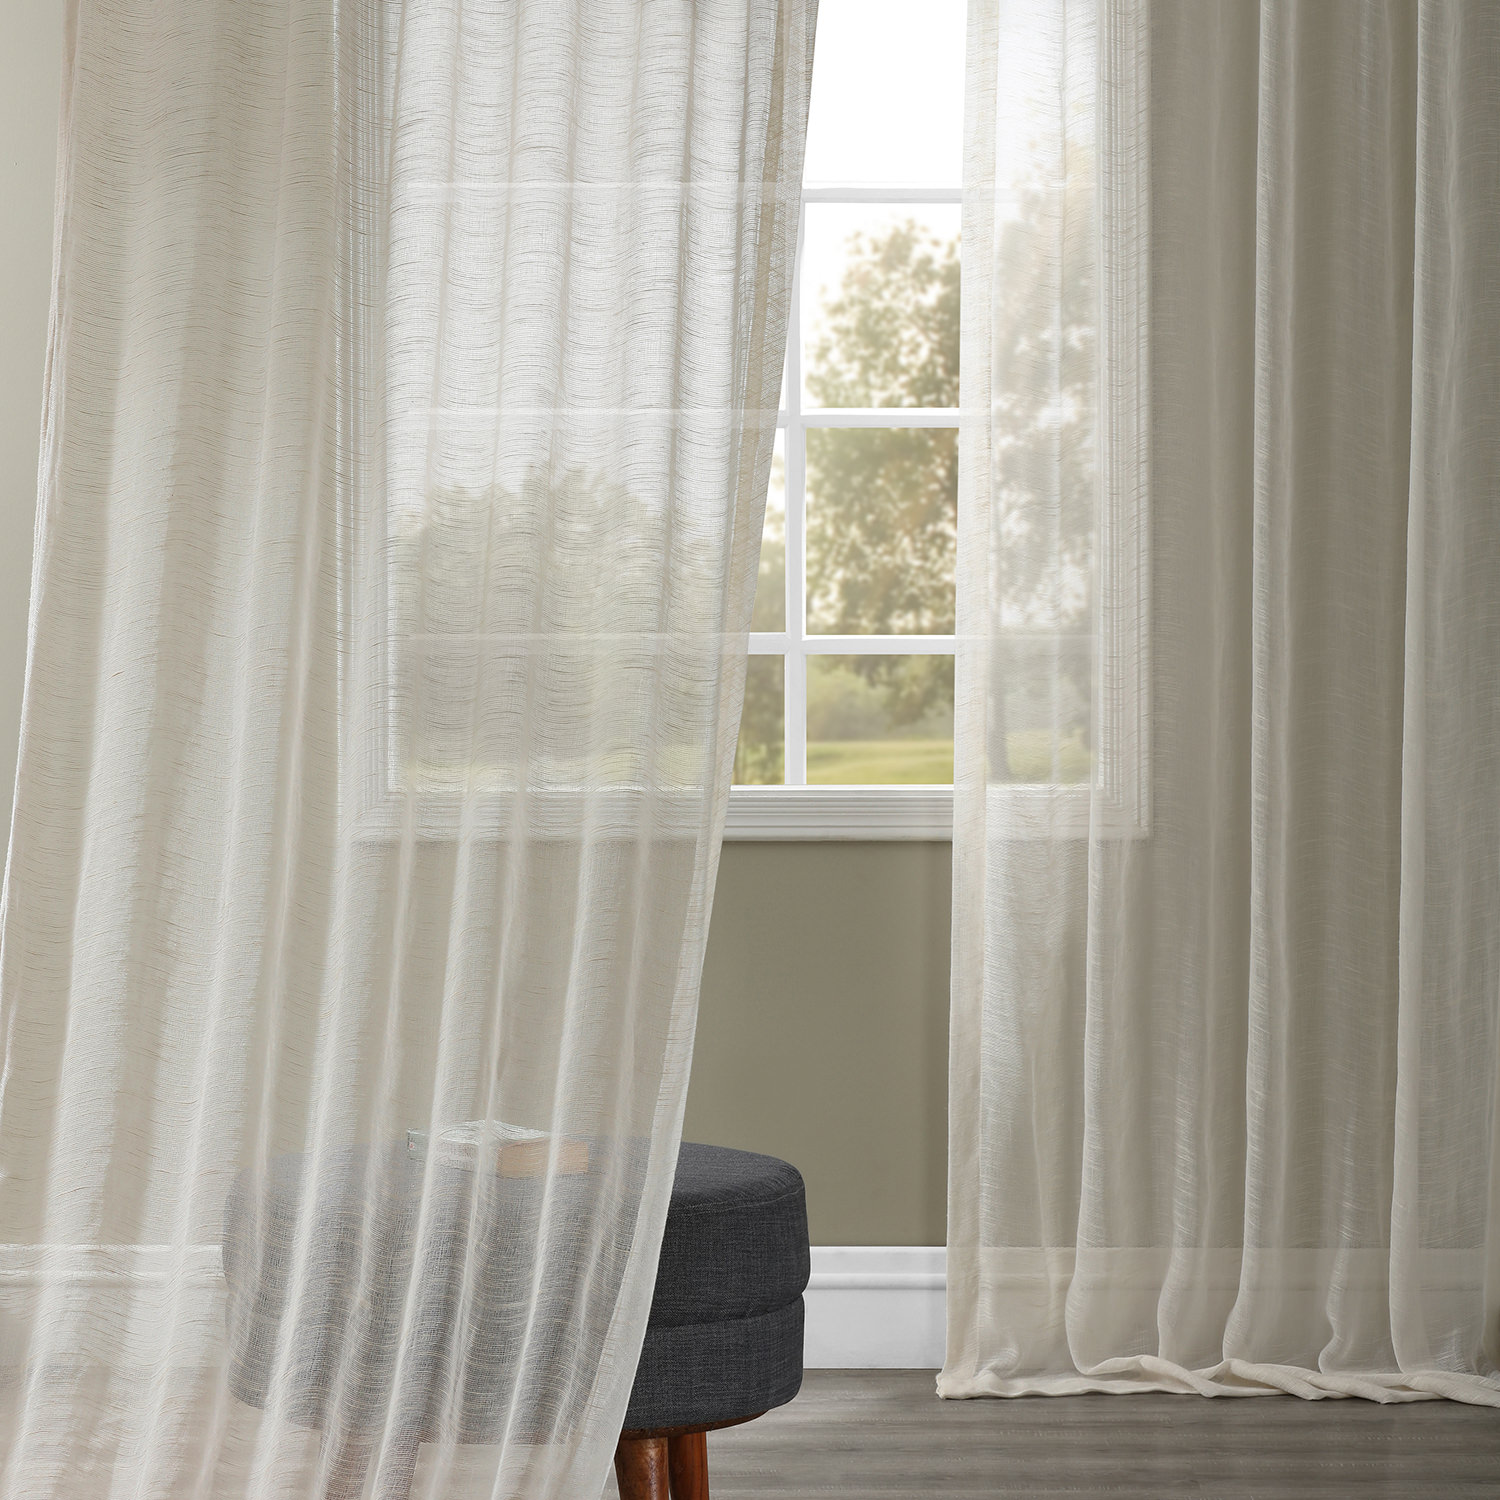 Open Weave Cream Linen Sheer Curtains Drapes